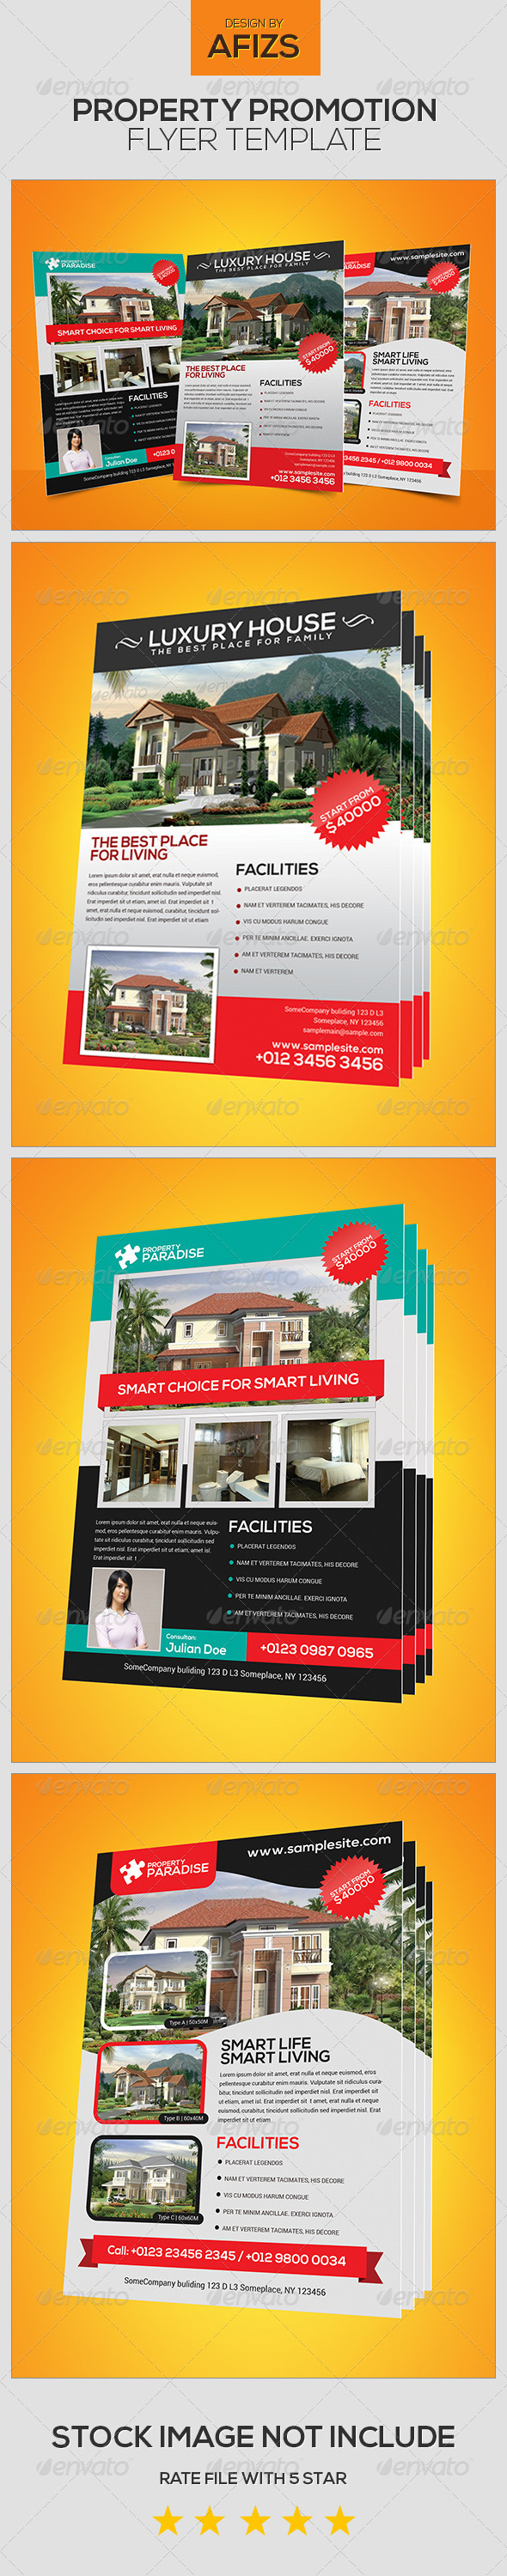 GraphicRiver Property Promotion Flyer 5542828